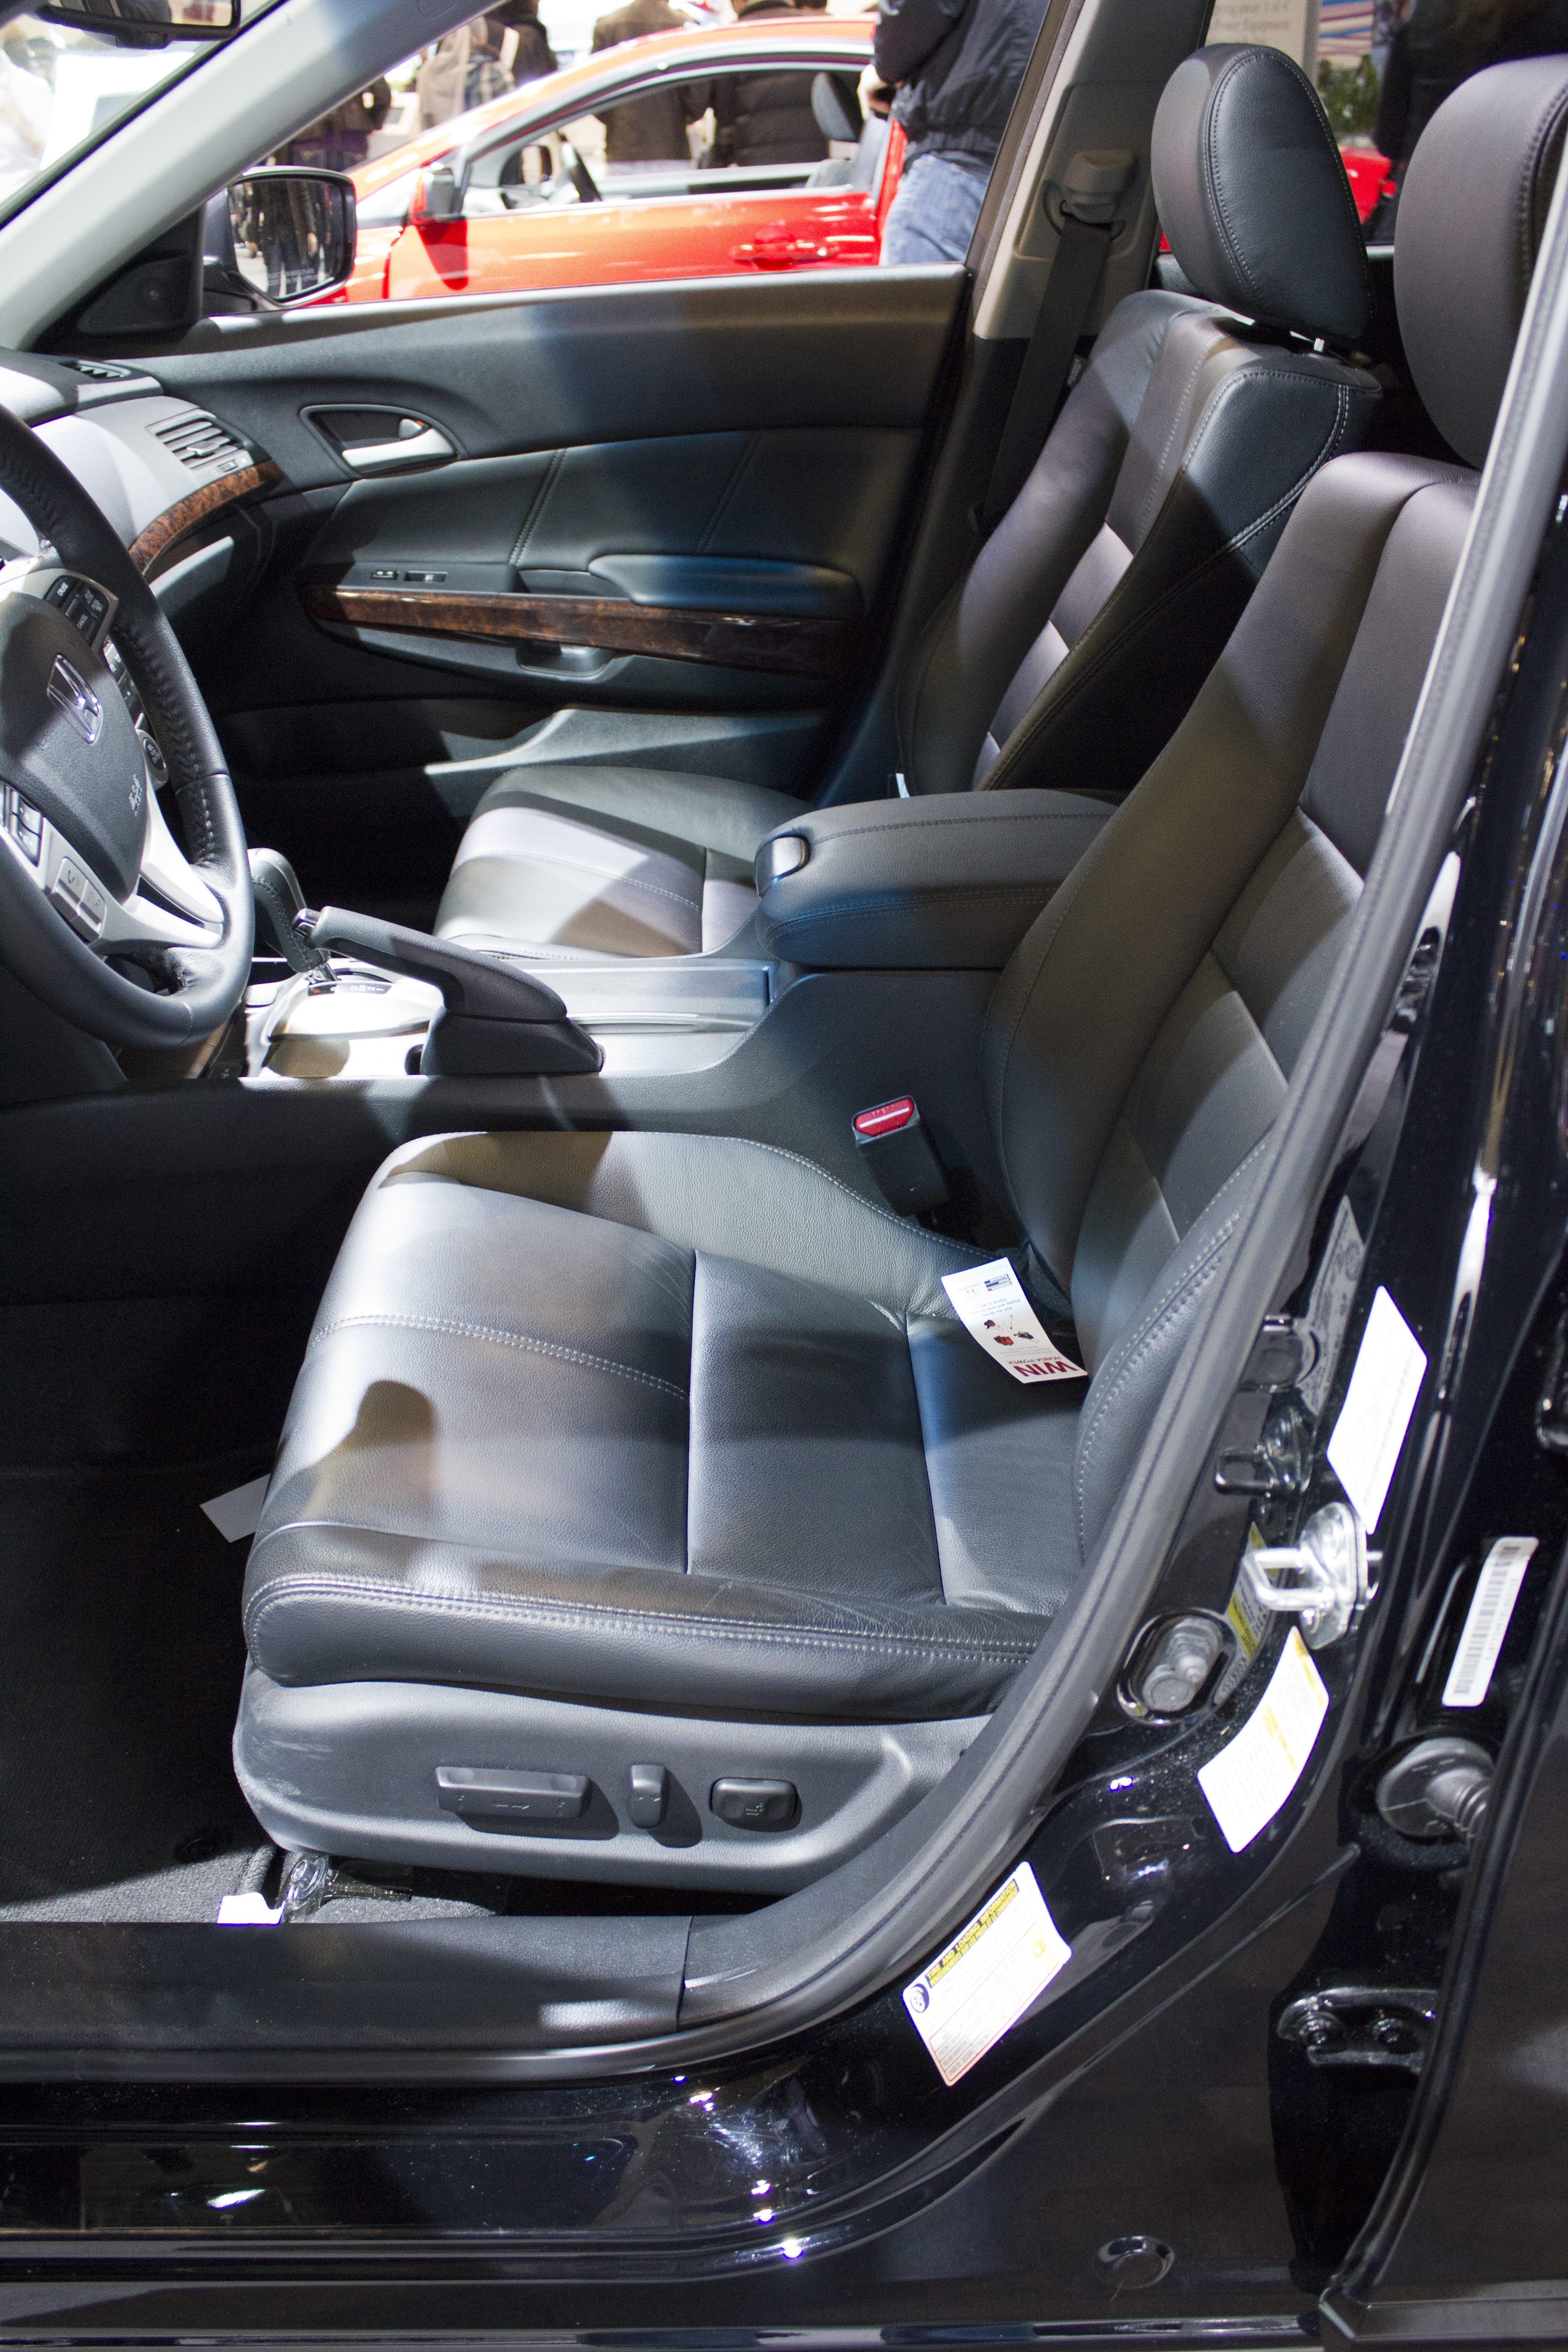 blog automatic allow ebay and control switches audio crosstour is review ex occupants l motors honda includes interior of the climate separate temperature sides system to display both divided on